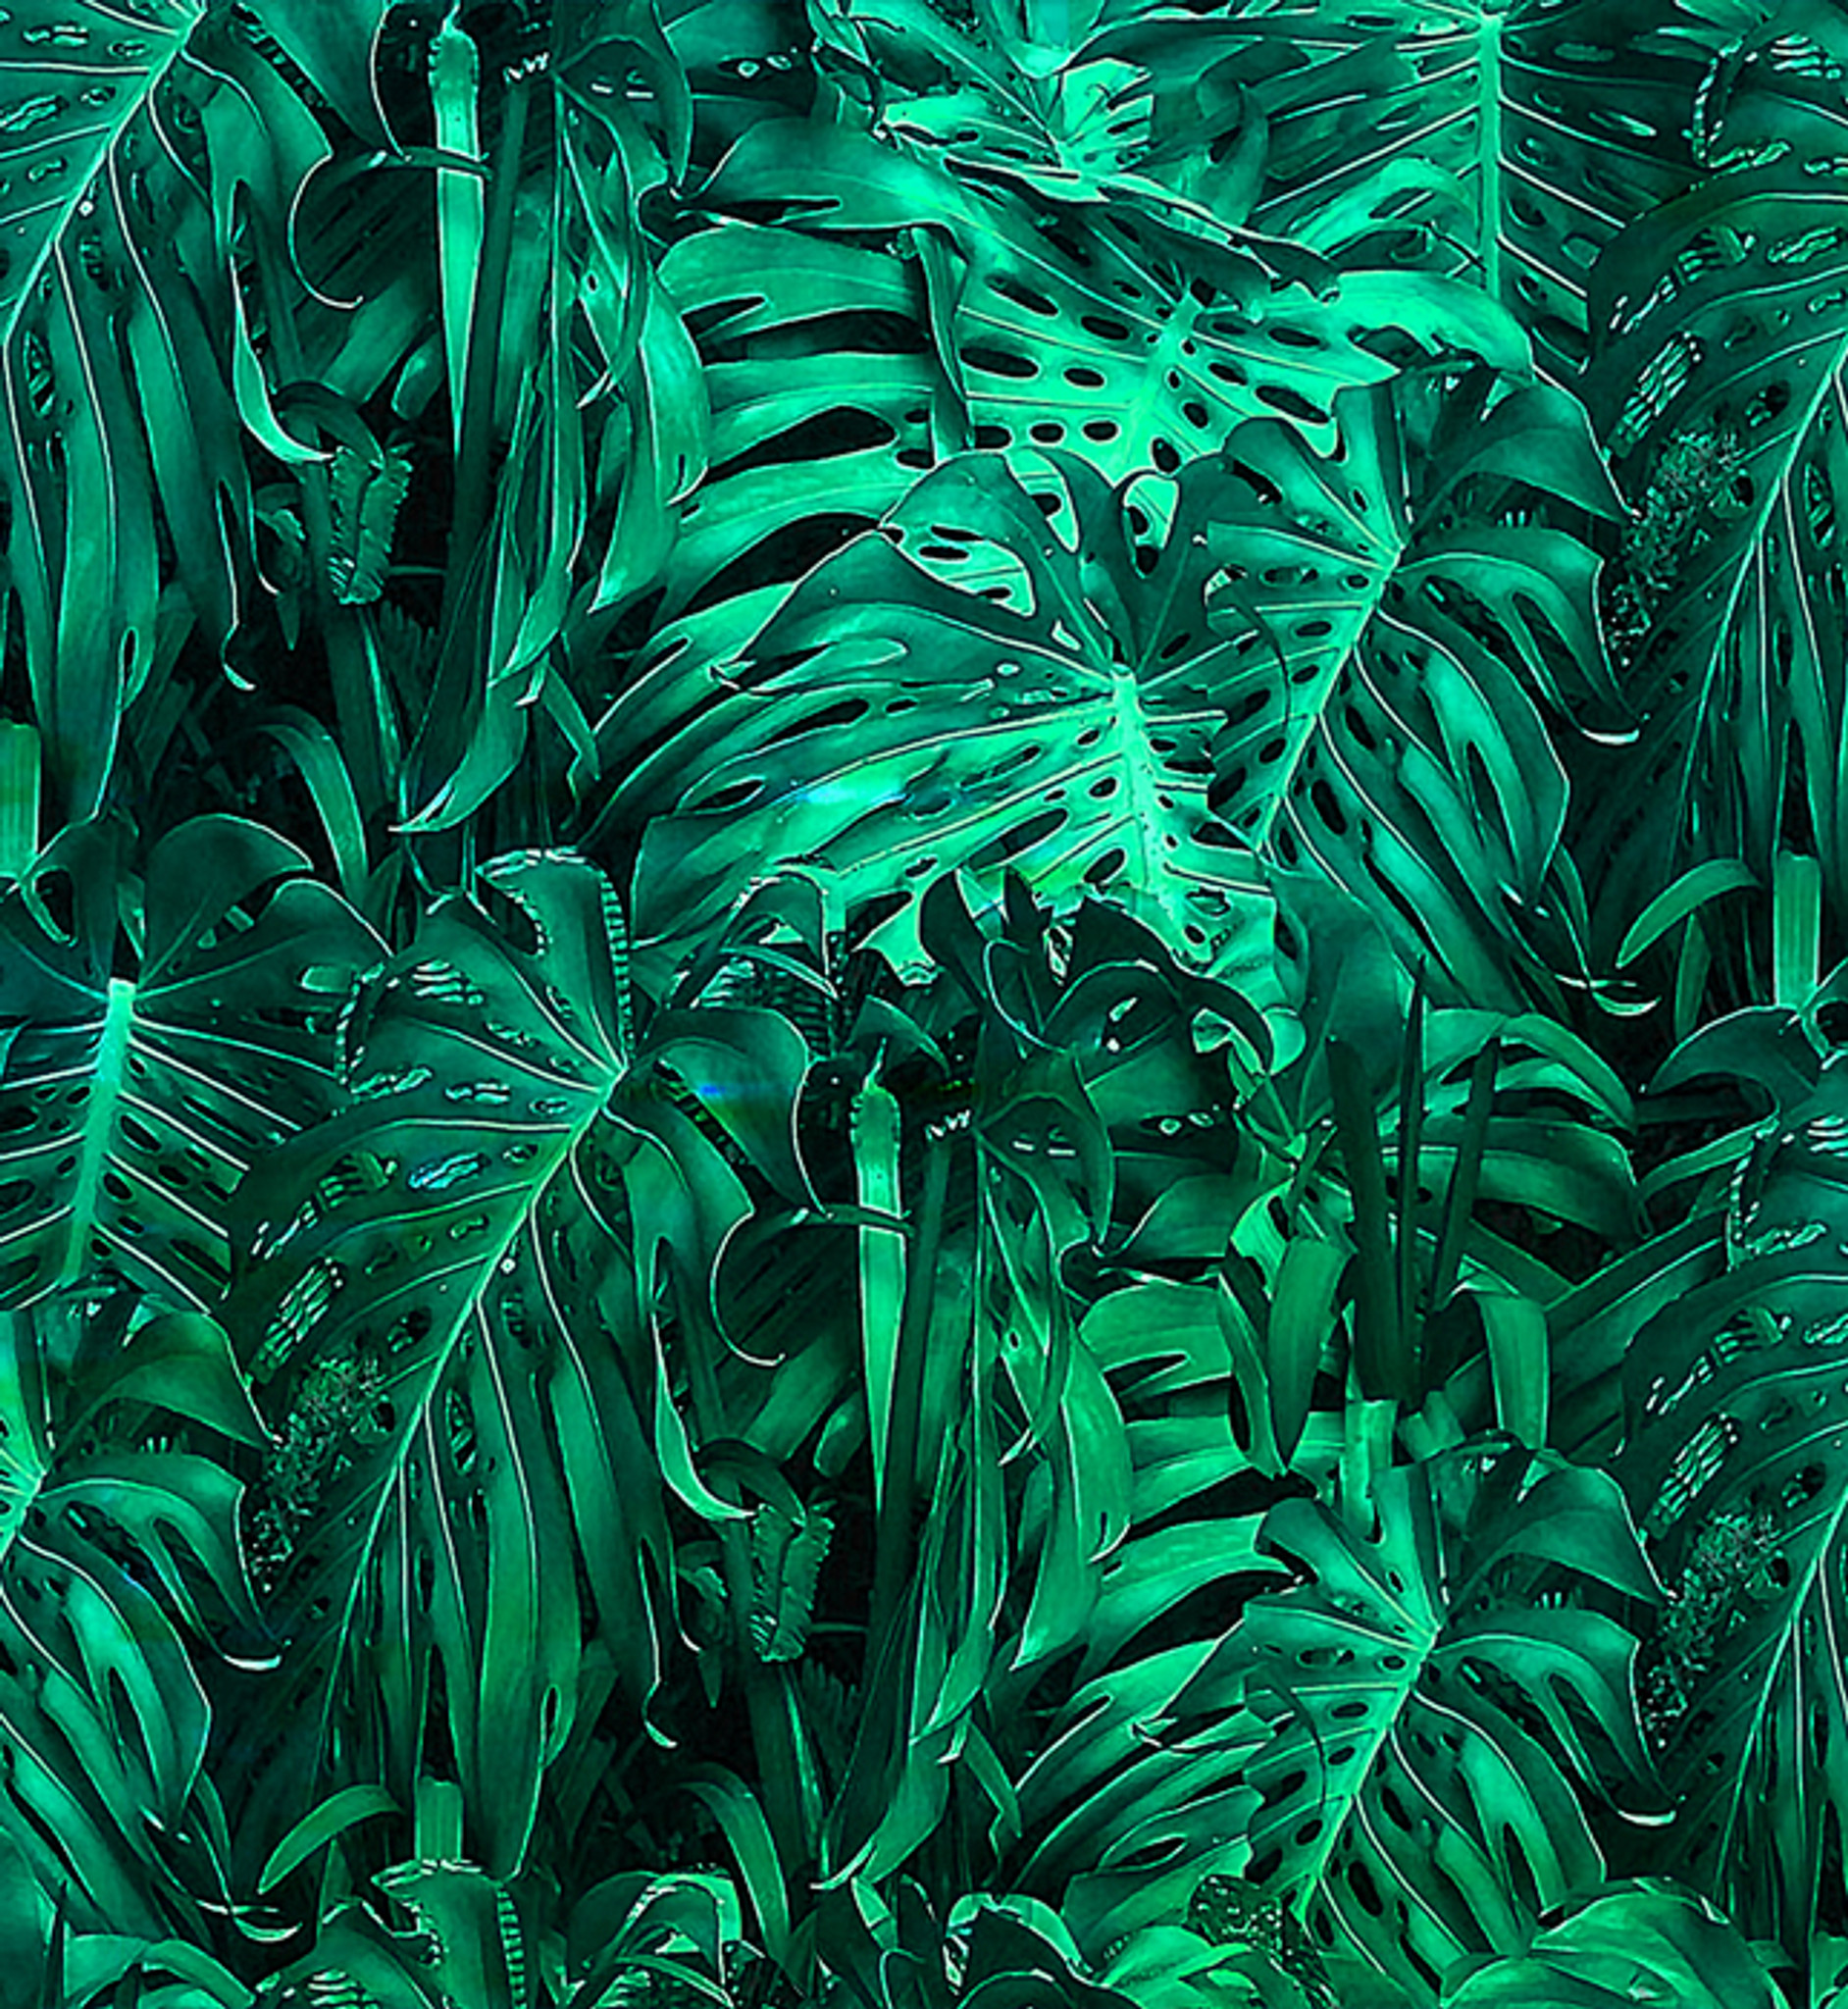 Wallpaper - Jungle Vibe - Metallic Green